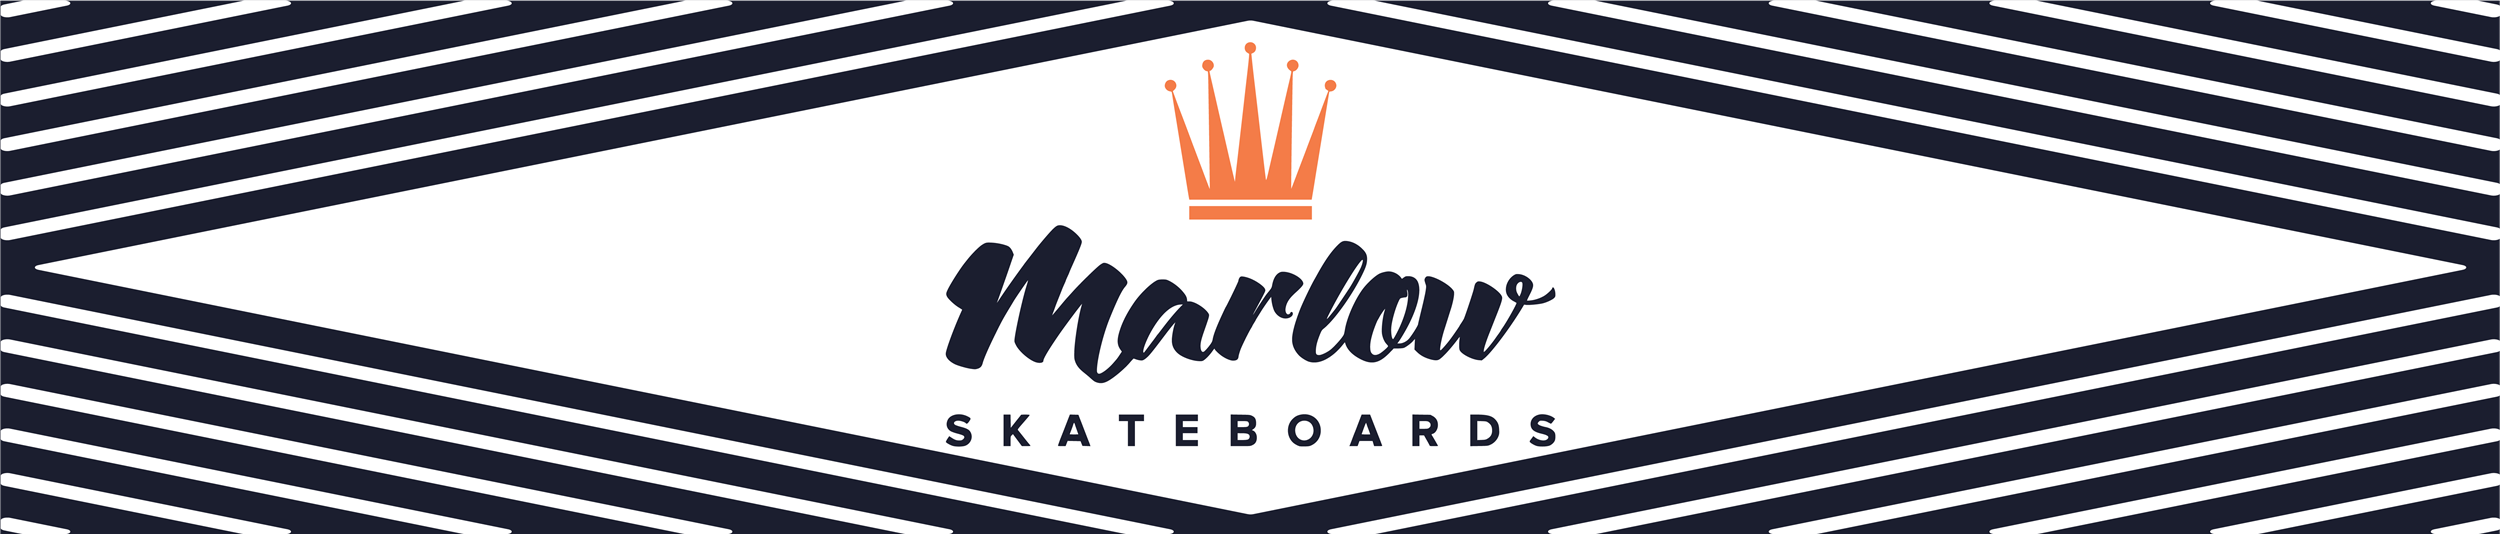 Marlow Skateboards